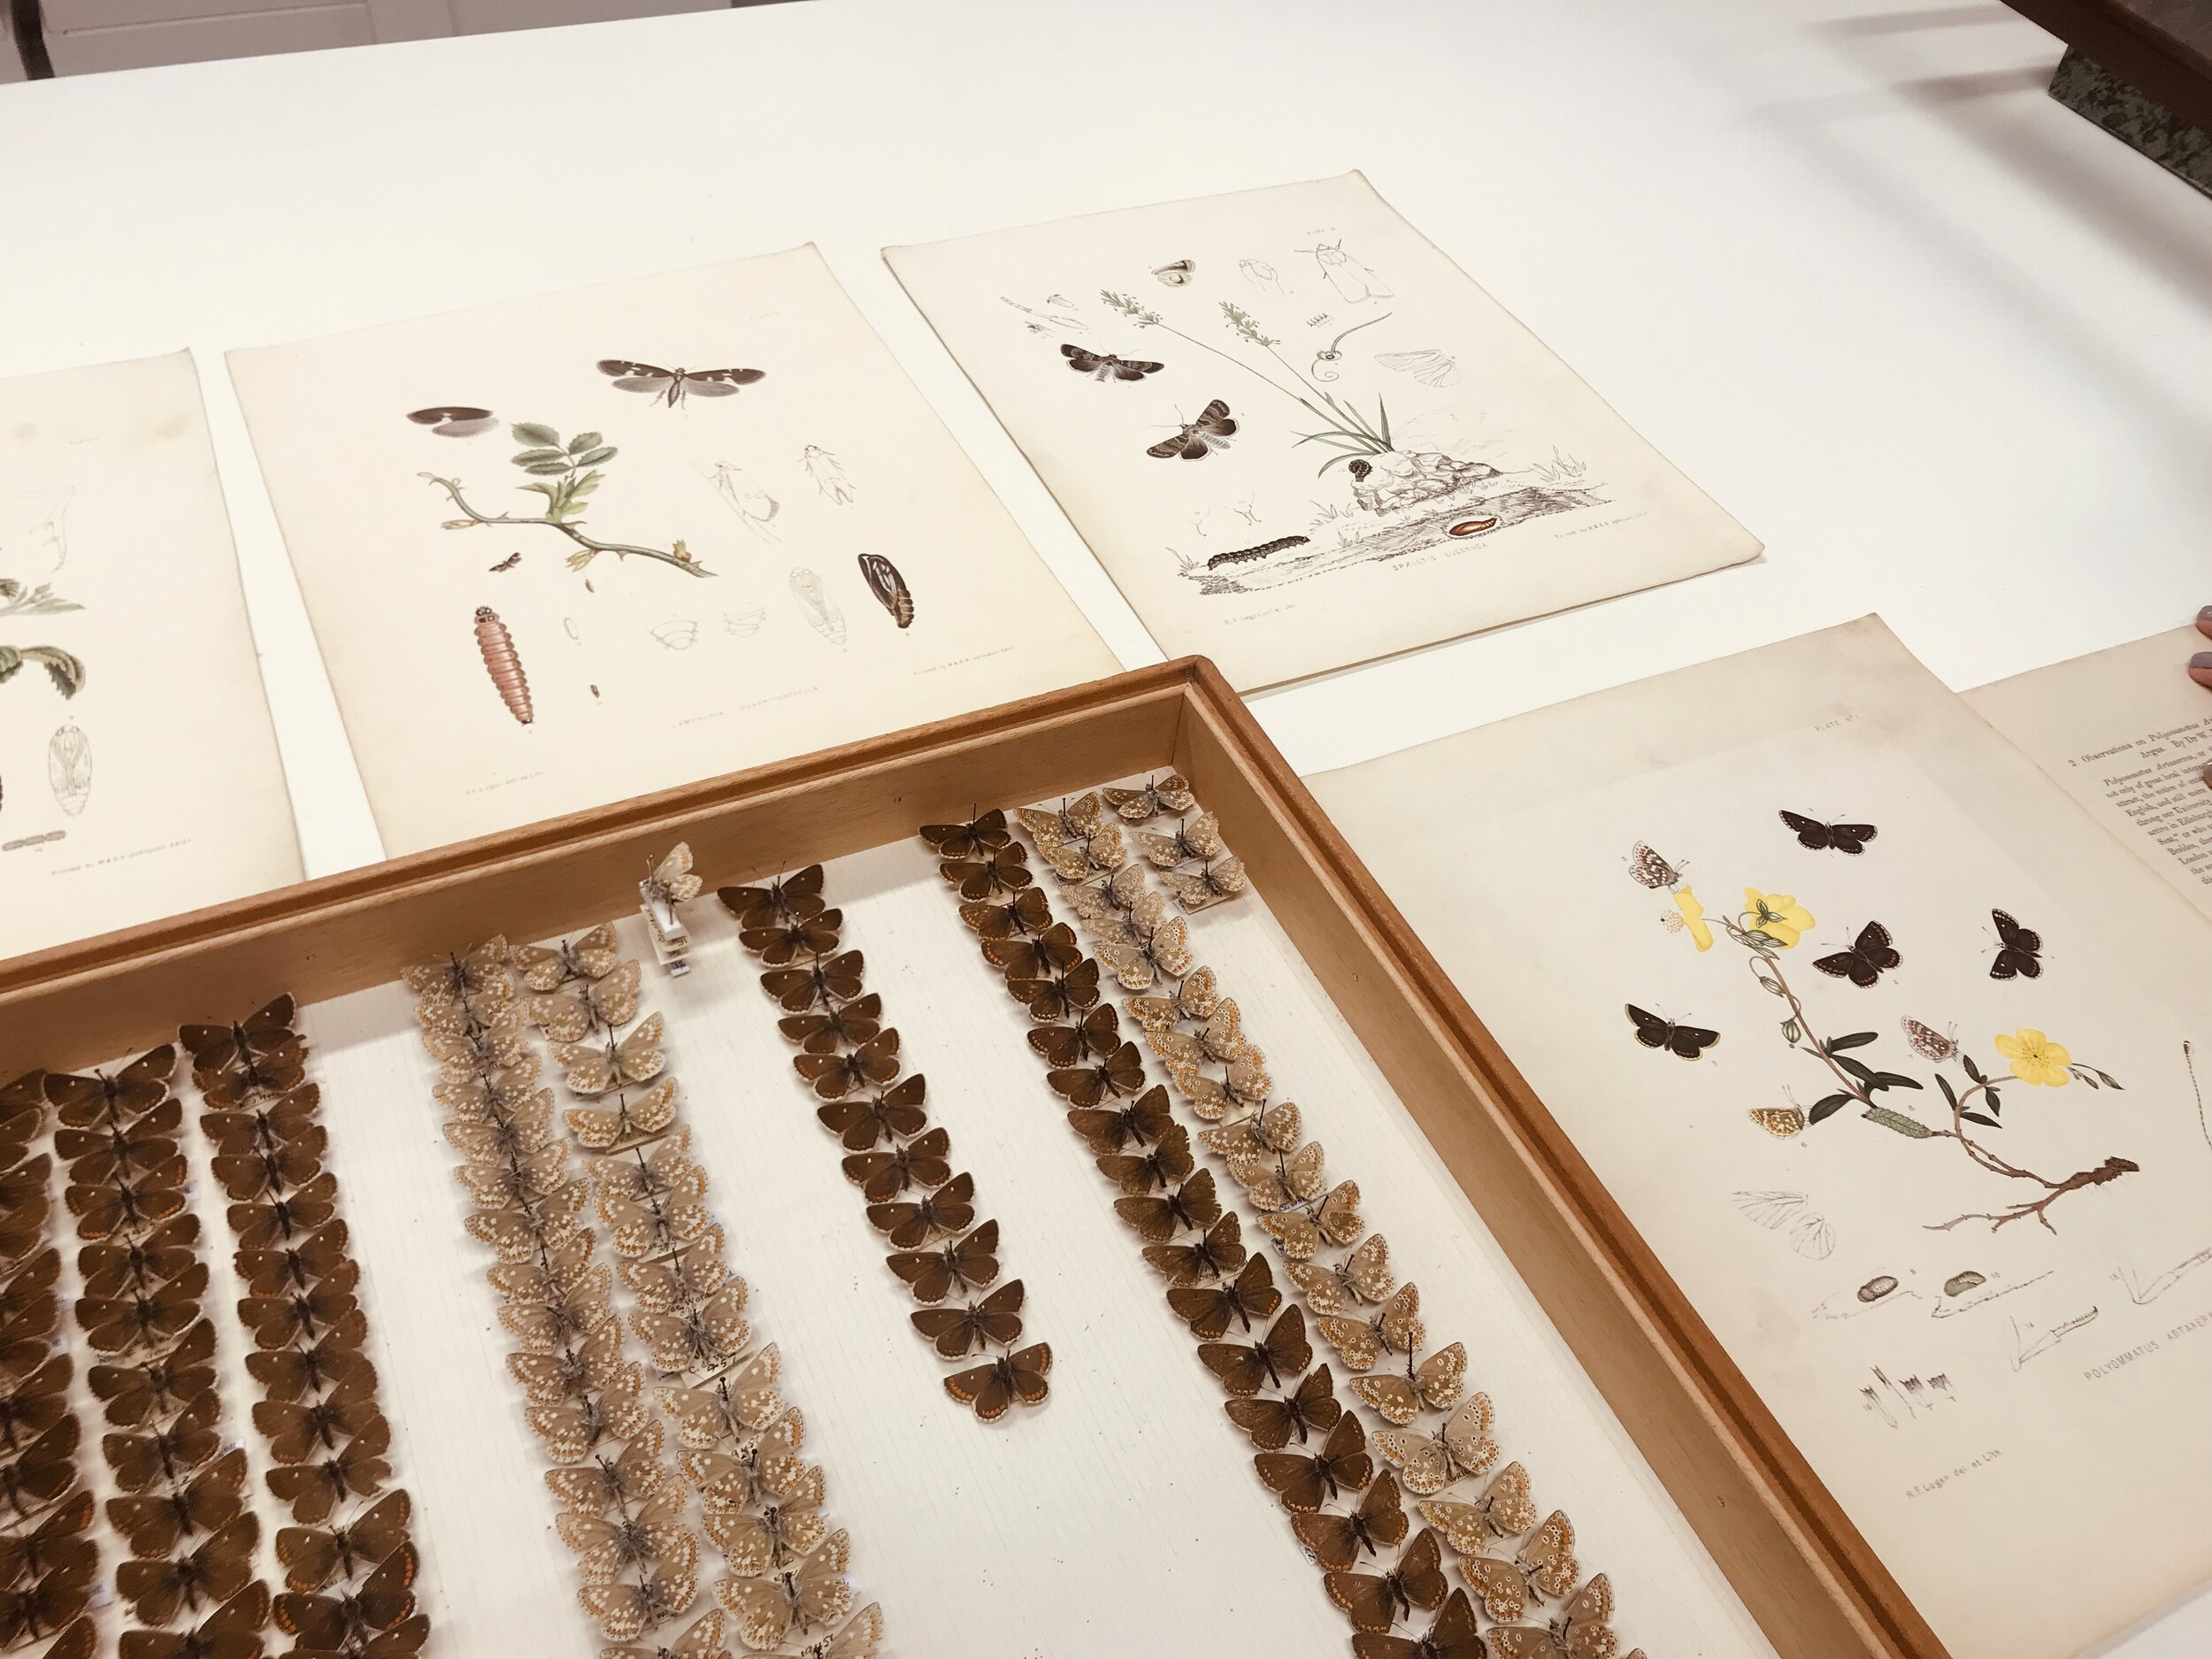 Some of Logan's pinned specimens and colour plates